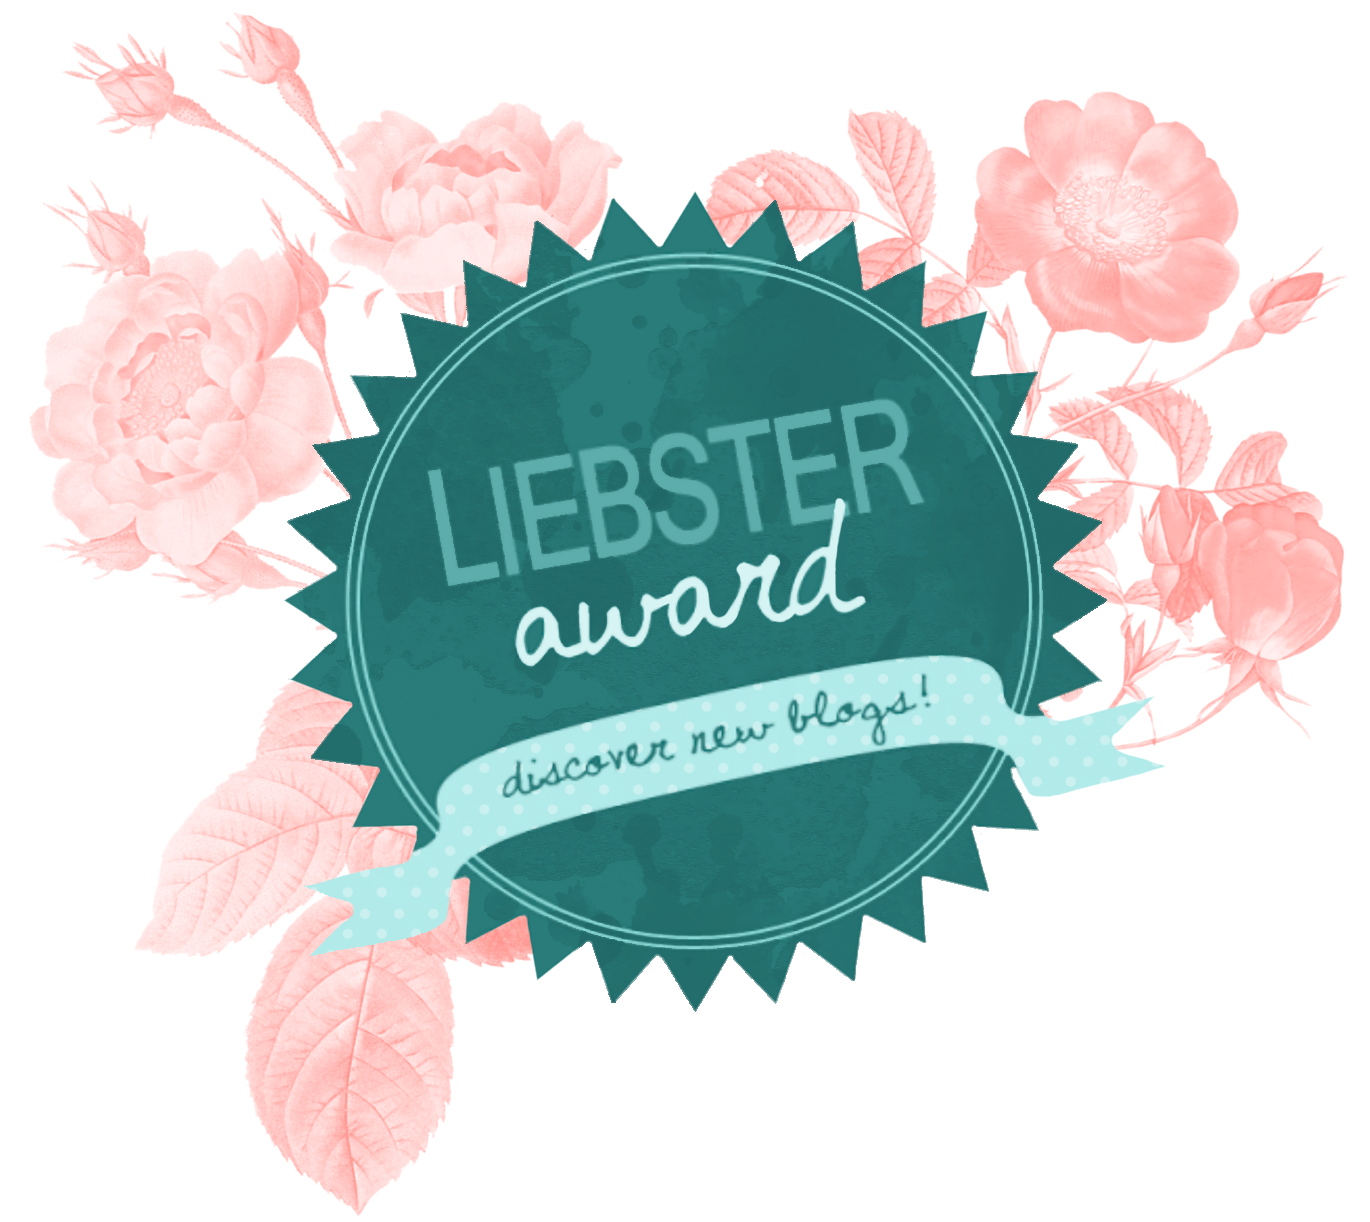 Blog nominato per i Liebster Awards